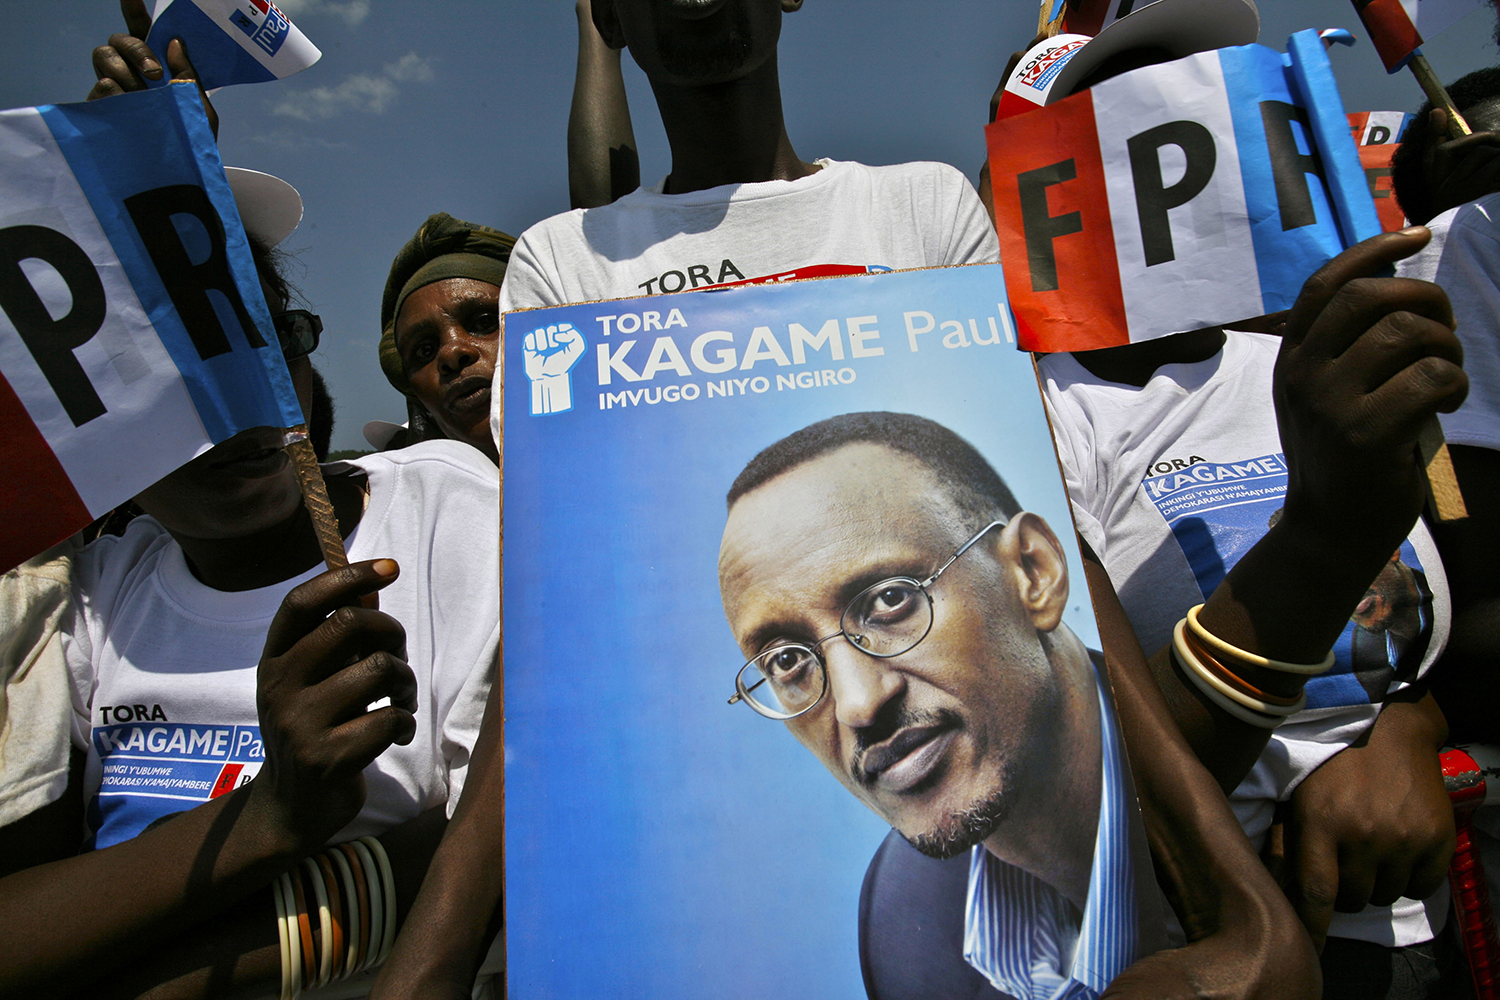 Supporters hold up posters while attending a Rwandan Patriotic Front political rally in Kigali, Rwanda, for the reelection of the President Paul Kagame on Aug. 3, 2010.